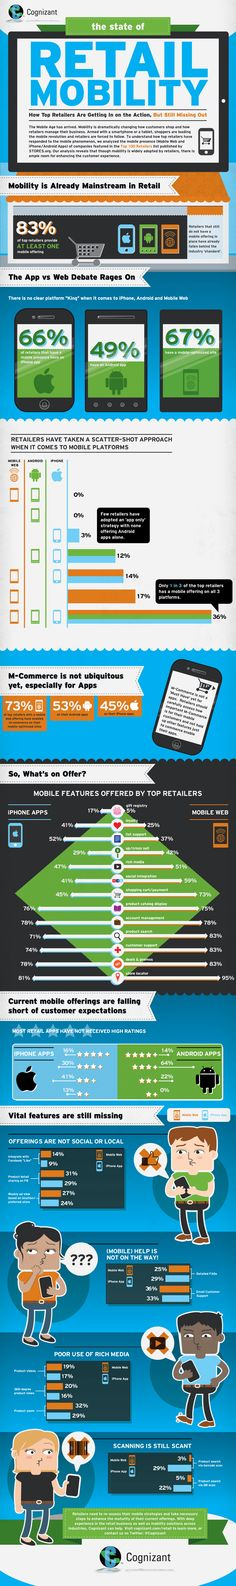 Retail #Mobility, how top retailers are getting on the action, but still missing out #Infographic by blog-images.forbes.com